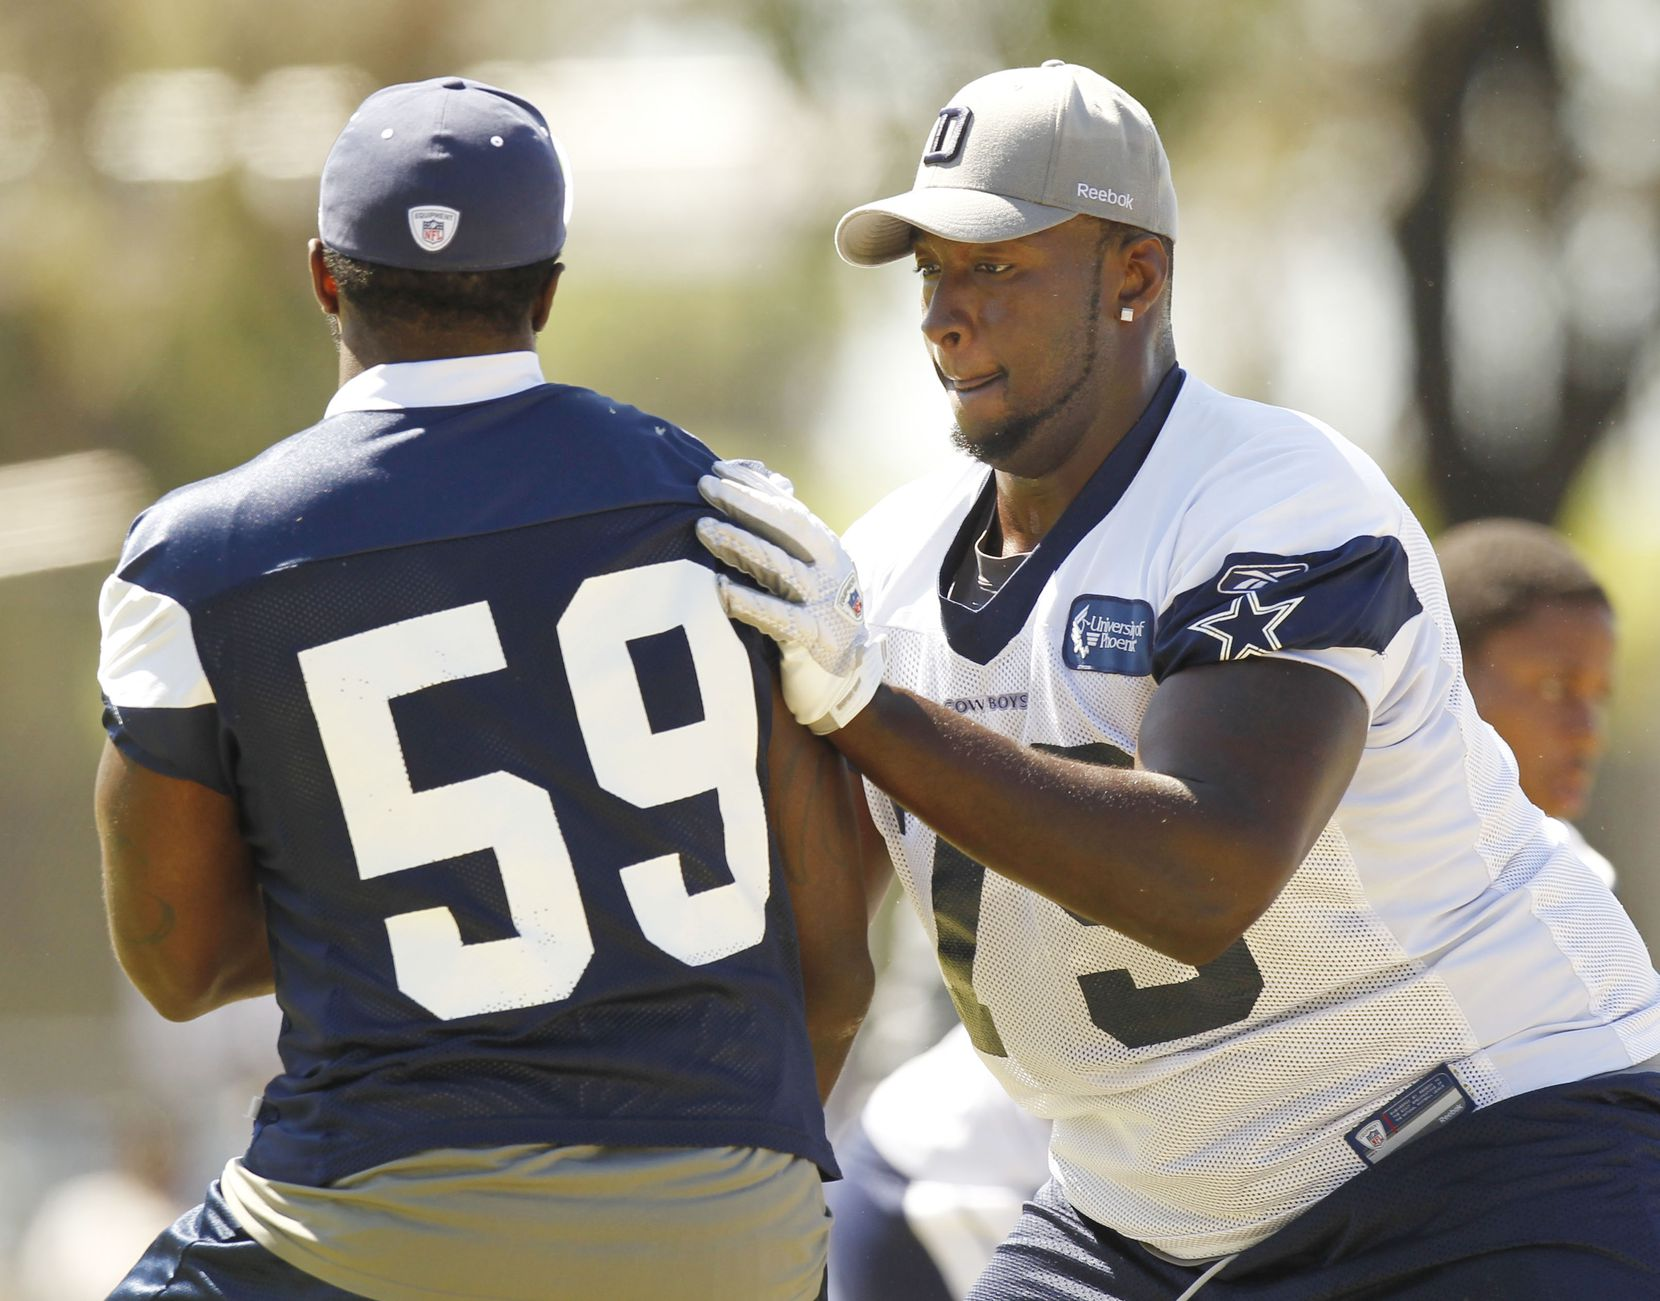 Dallas Cowboys offensive linemane Robert Brewster (79) blocks linebacker Brandon Williams (59)  during afternoon practice at training camp in Oxnard, California, on August 19, 2010. (Michael Ainsworth/The Dallas Morning News)